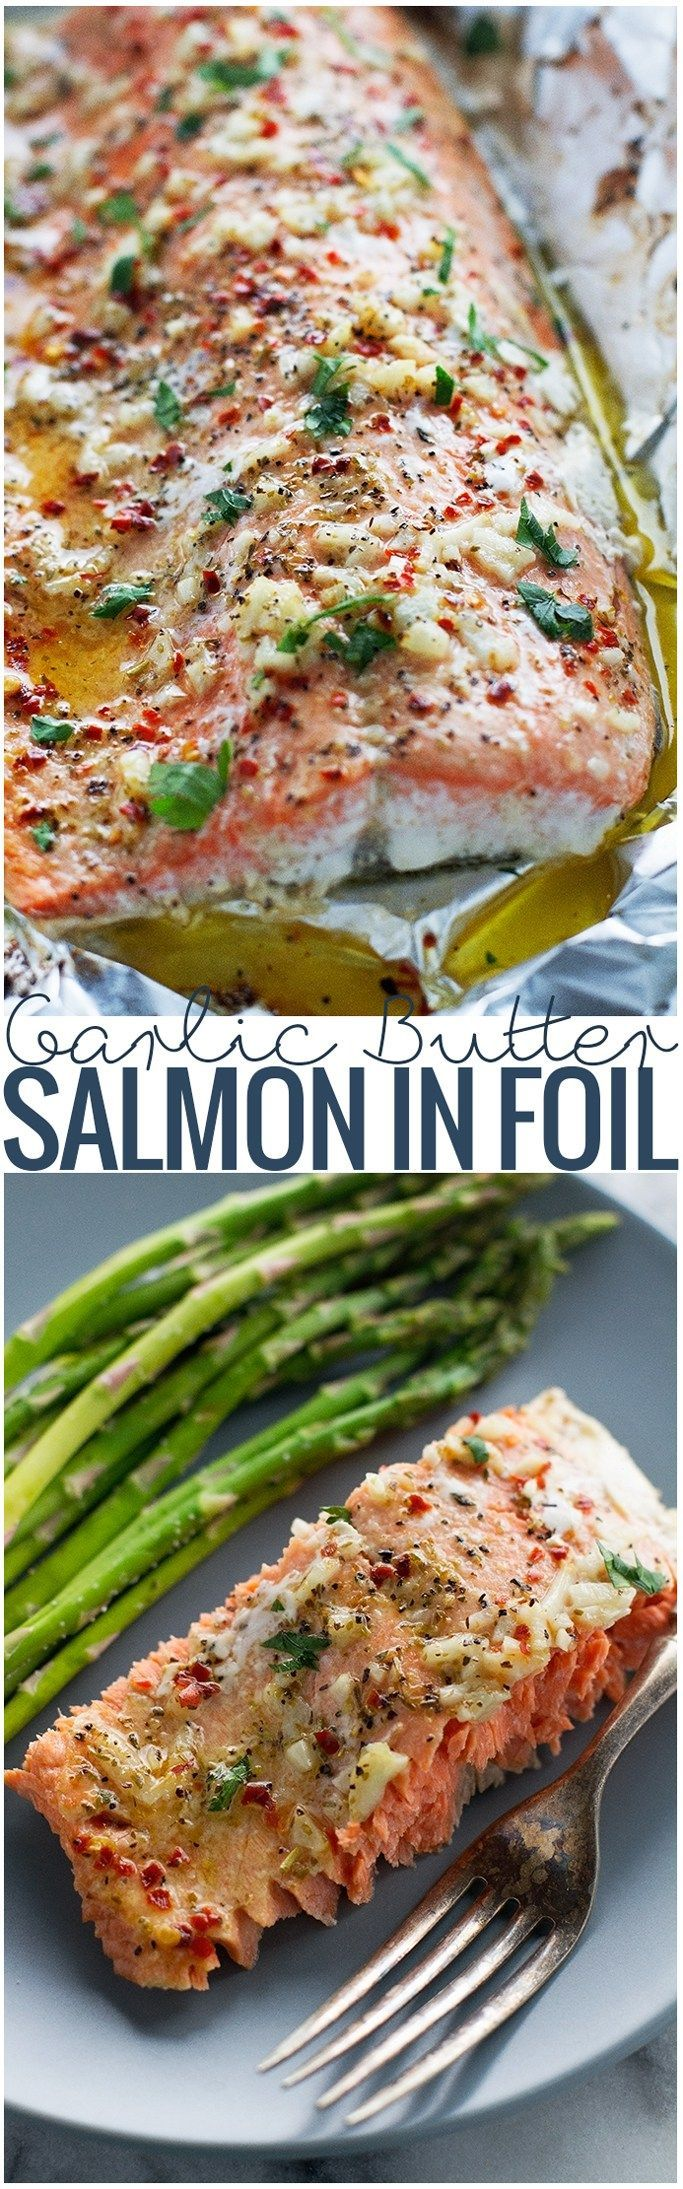 Garlic Butter Baked Salmon in Foil Recipe | Little Spice Jar.  See more at the image link